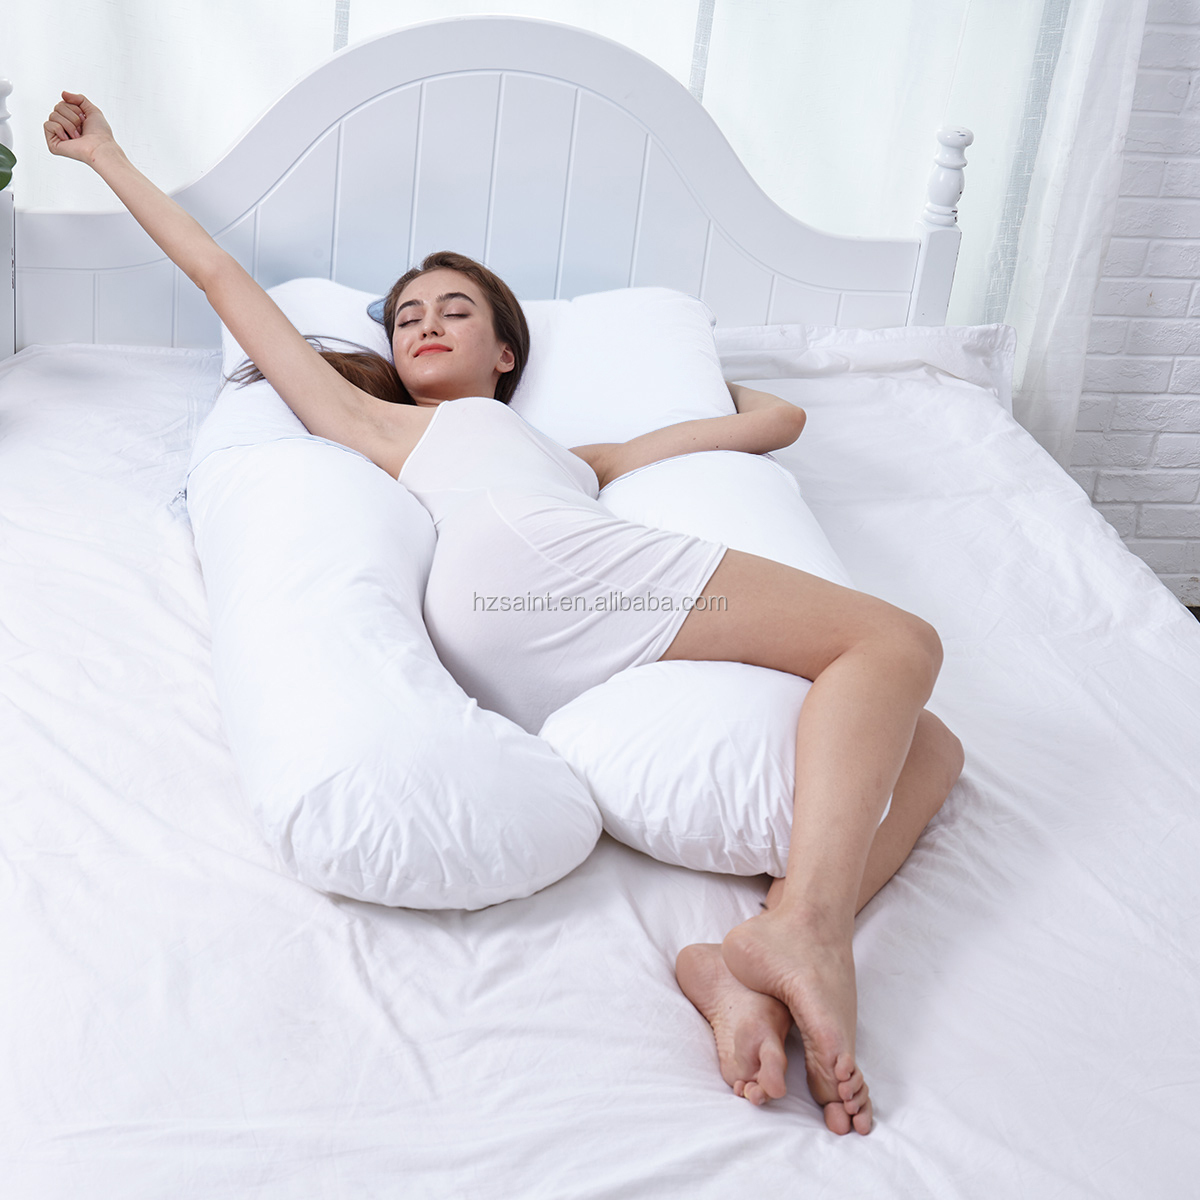 Saint Glory Wholesale U Shape Pregnant Maternity Full Body Pregnancy Women Pillow with Removable Zippered Cover